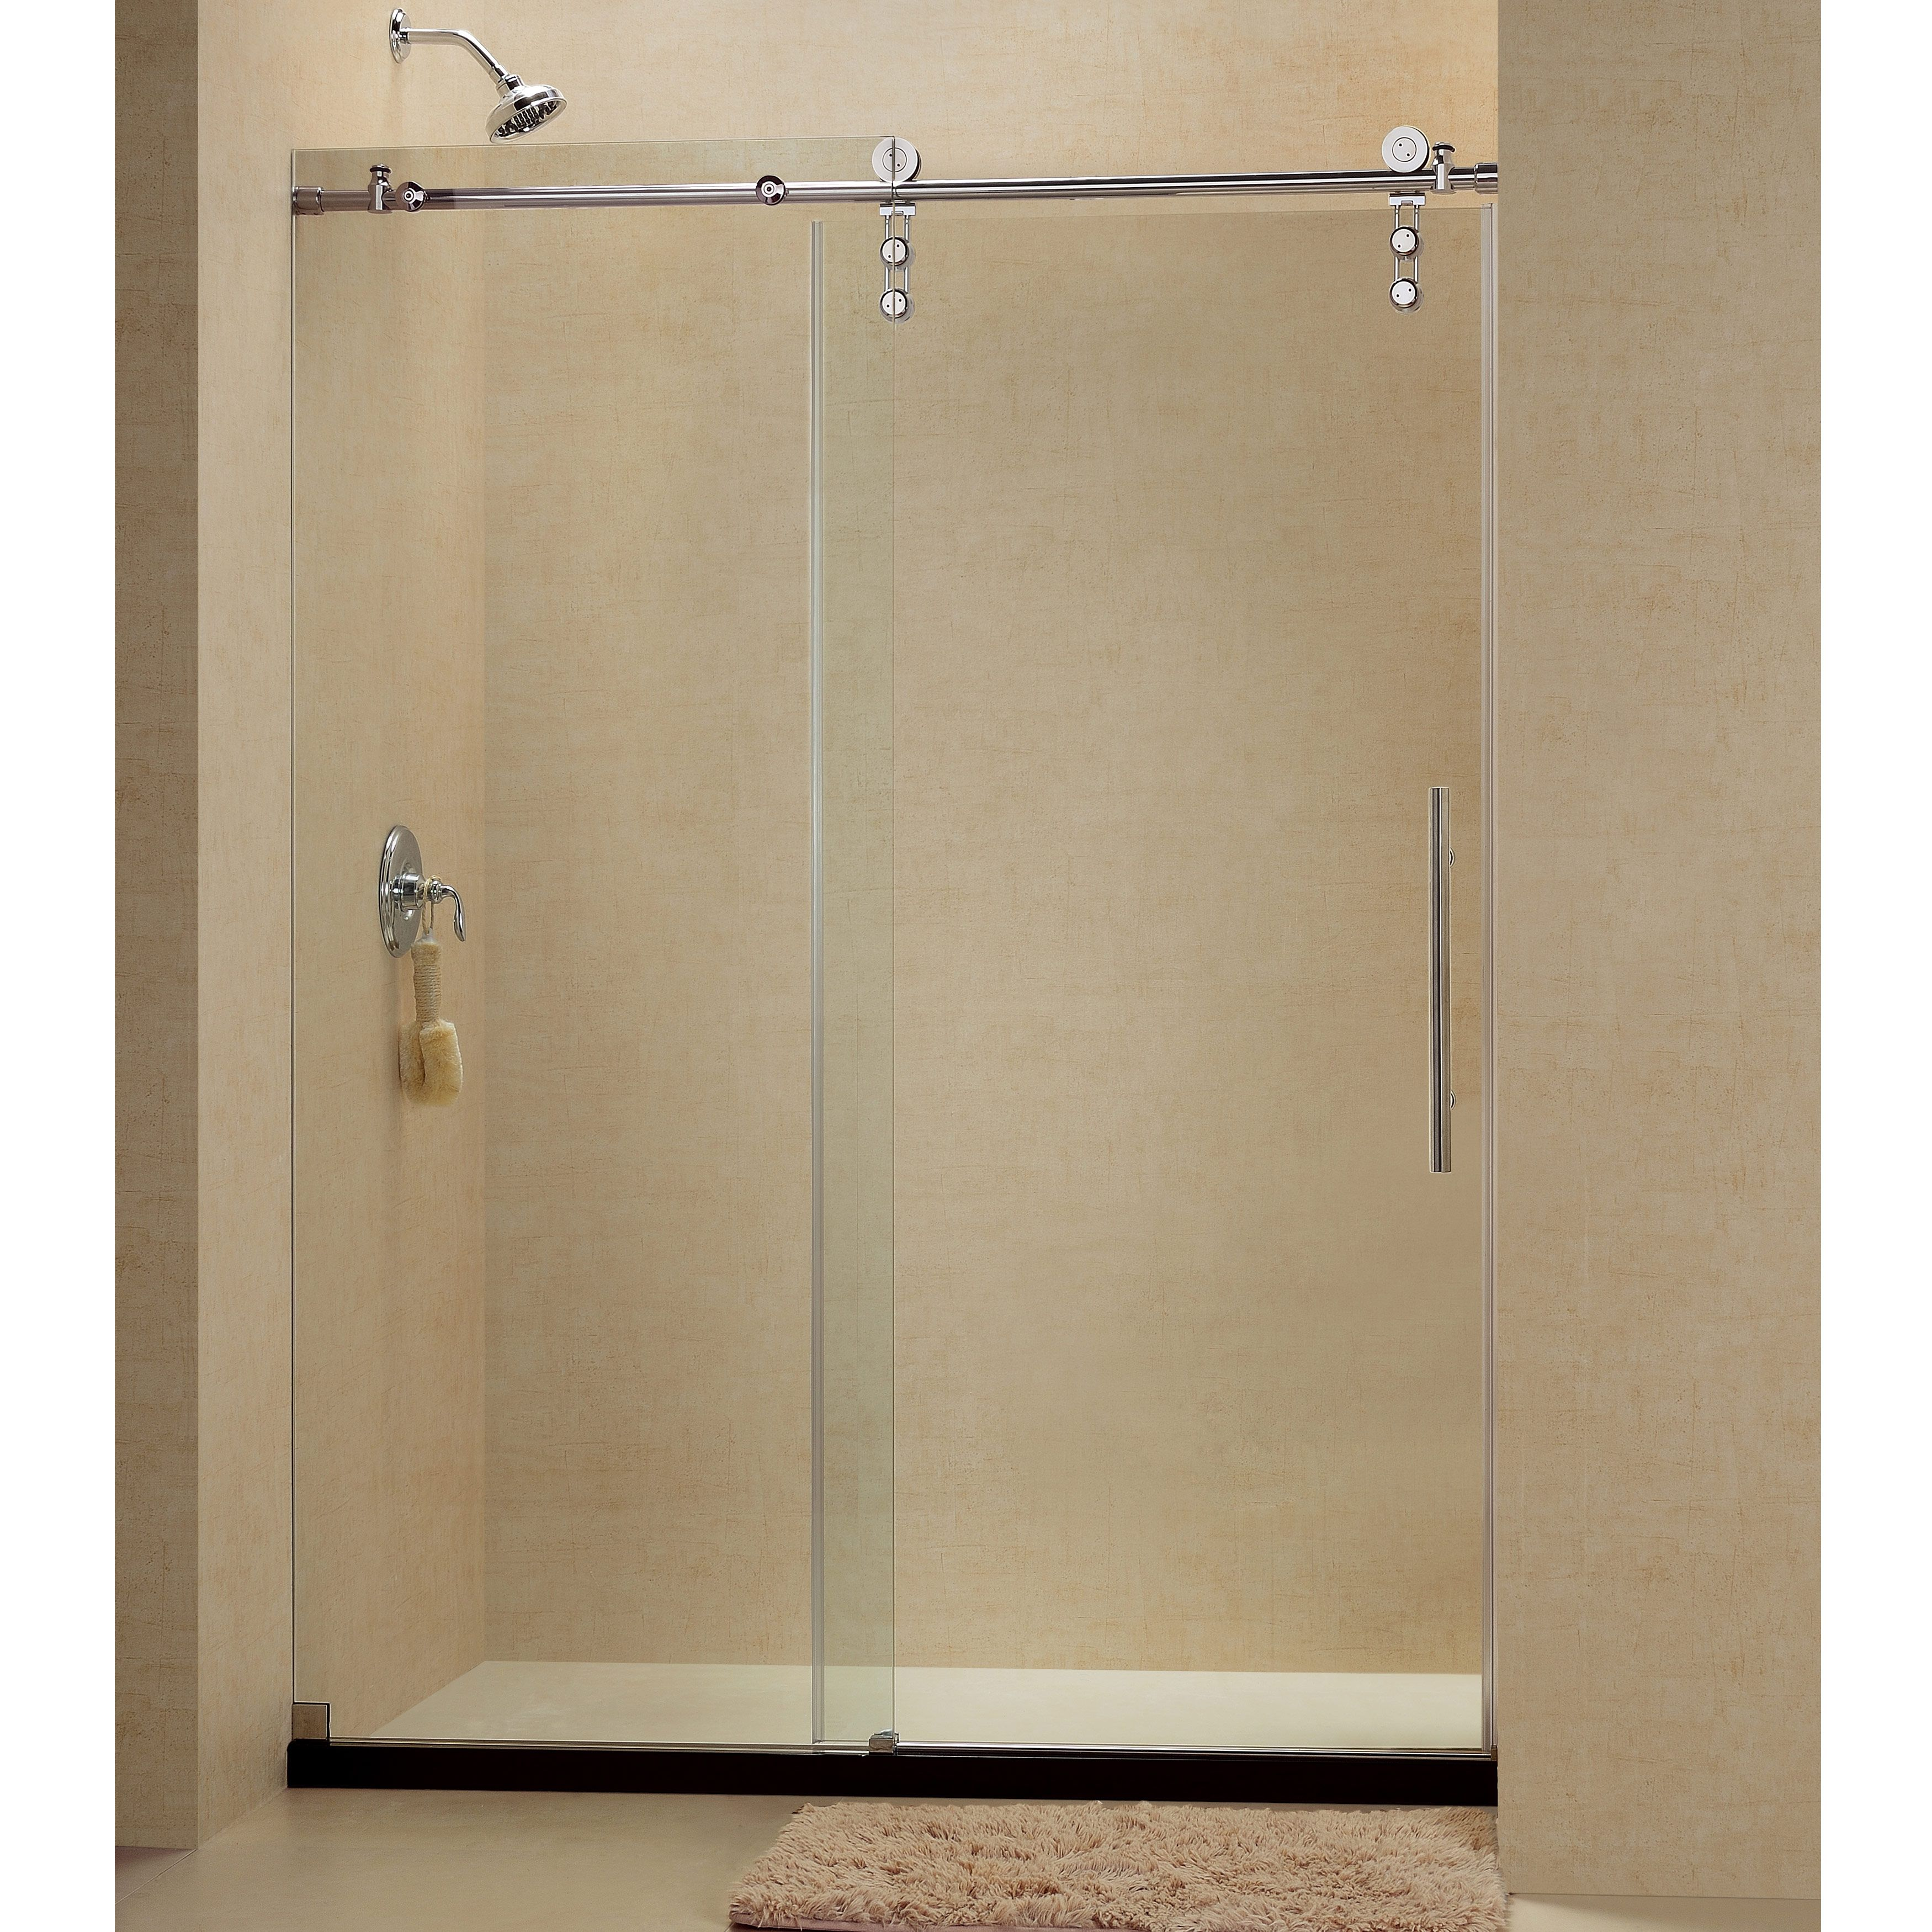 Dreamline Enigma Z 44 To 48 Inches Fully Frameless Sliding Shower